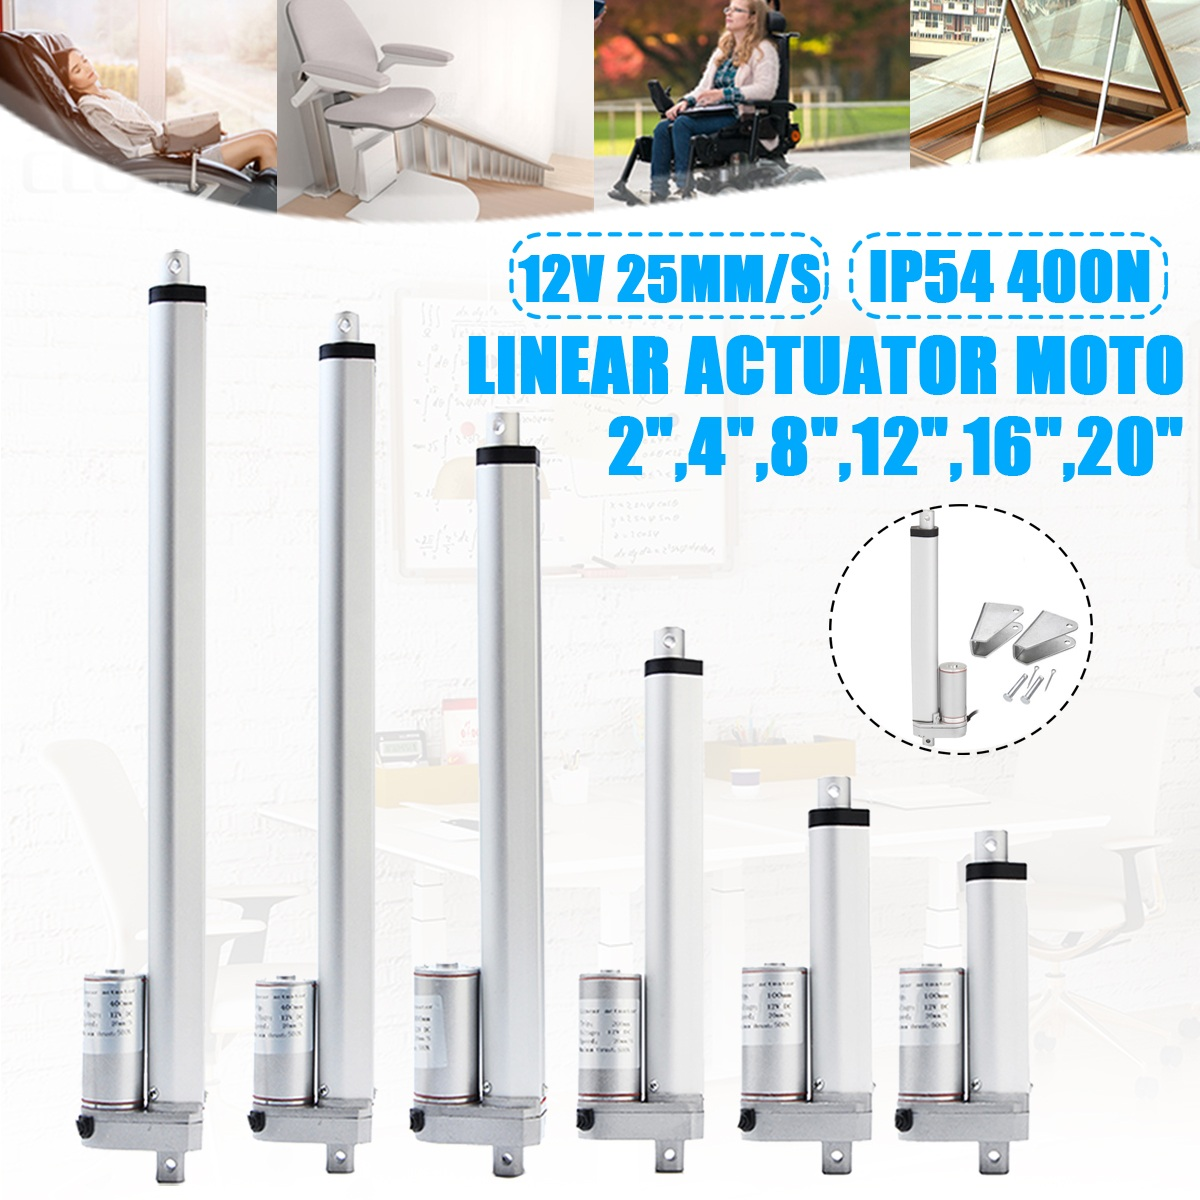 IP54 2-20 Inch 400N <font><b>12V</b></font> <font><b>25mm</b></font>/s Small DC <font><b>12V</b></font> Electric <font><b>Motor</b></font> Linear Actuator For lectric Self Unicycle Scooter Input Voltage Range image